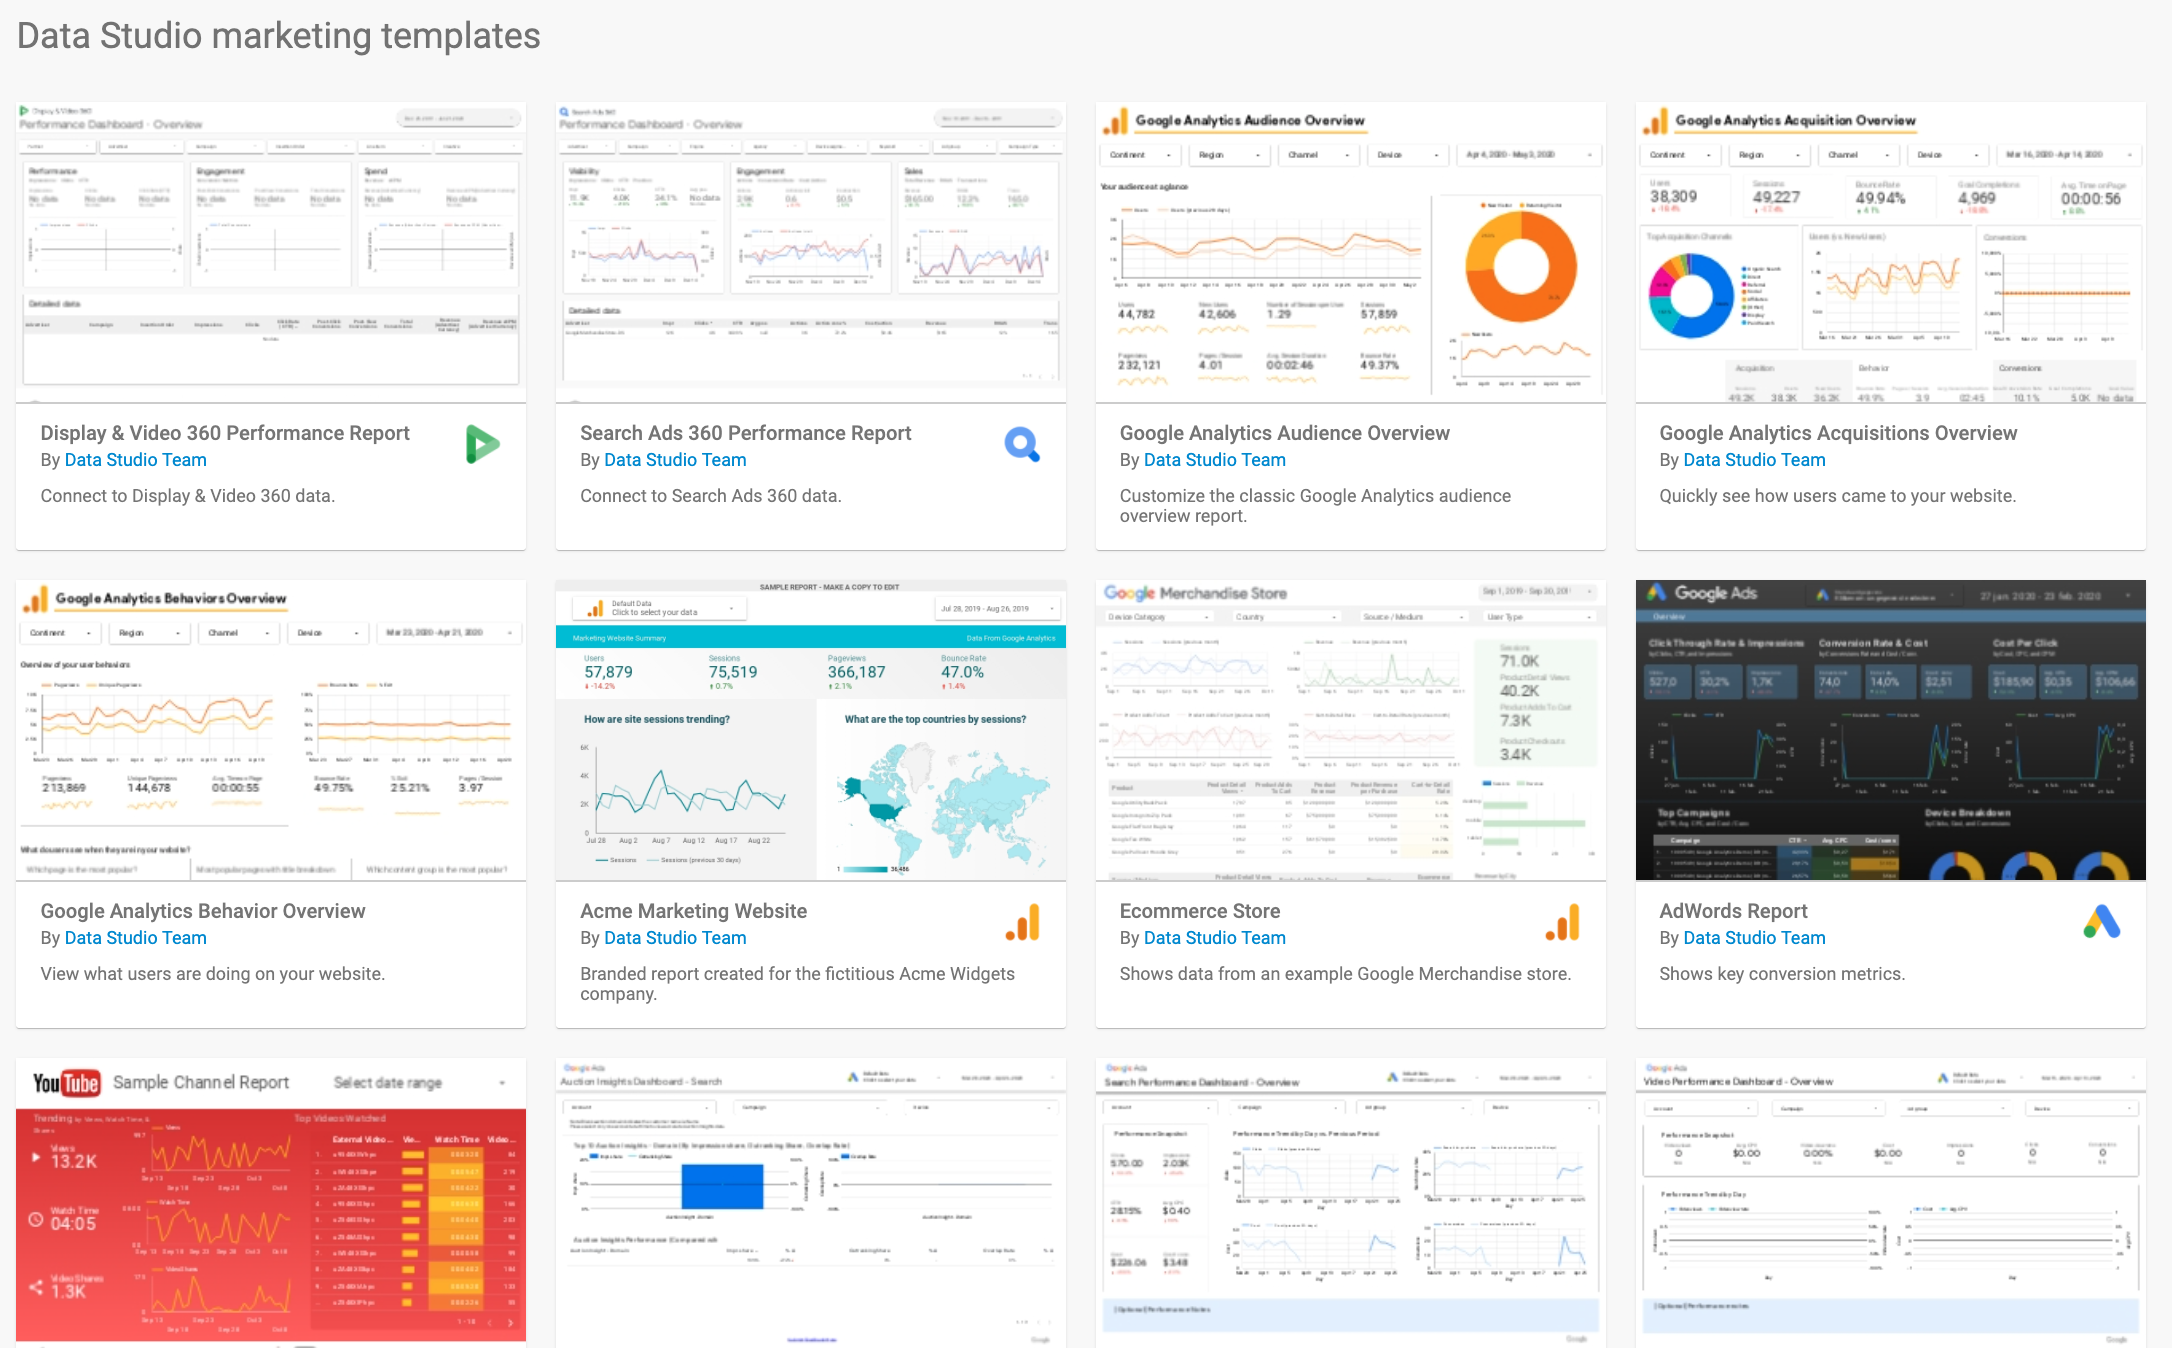 Data Studio Marketing Templates